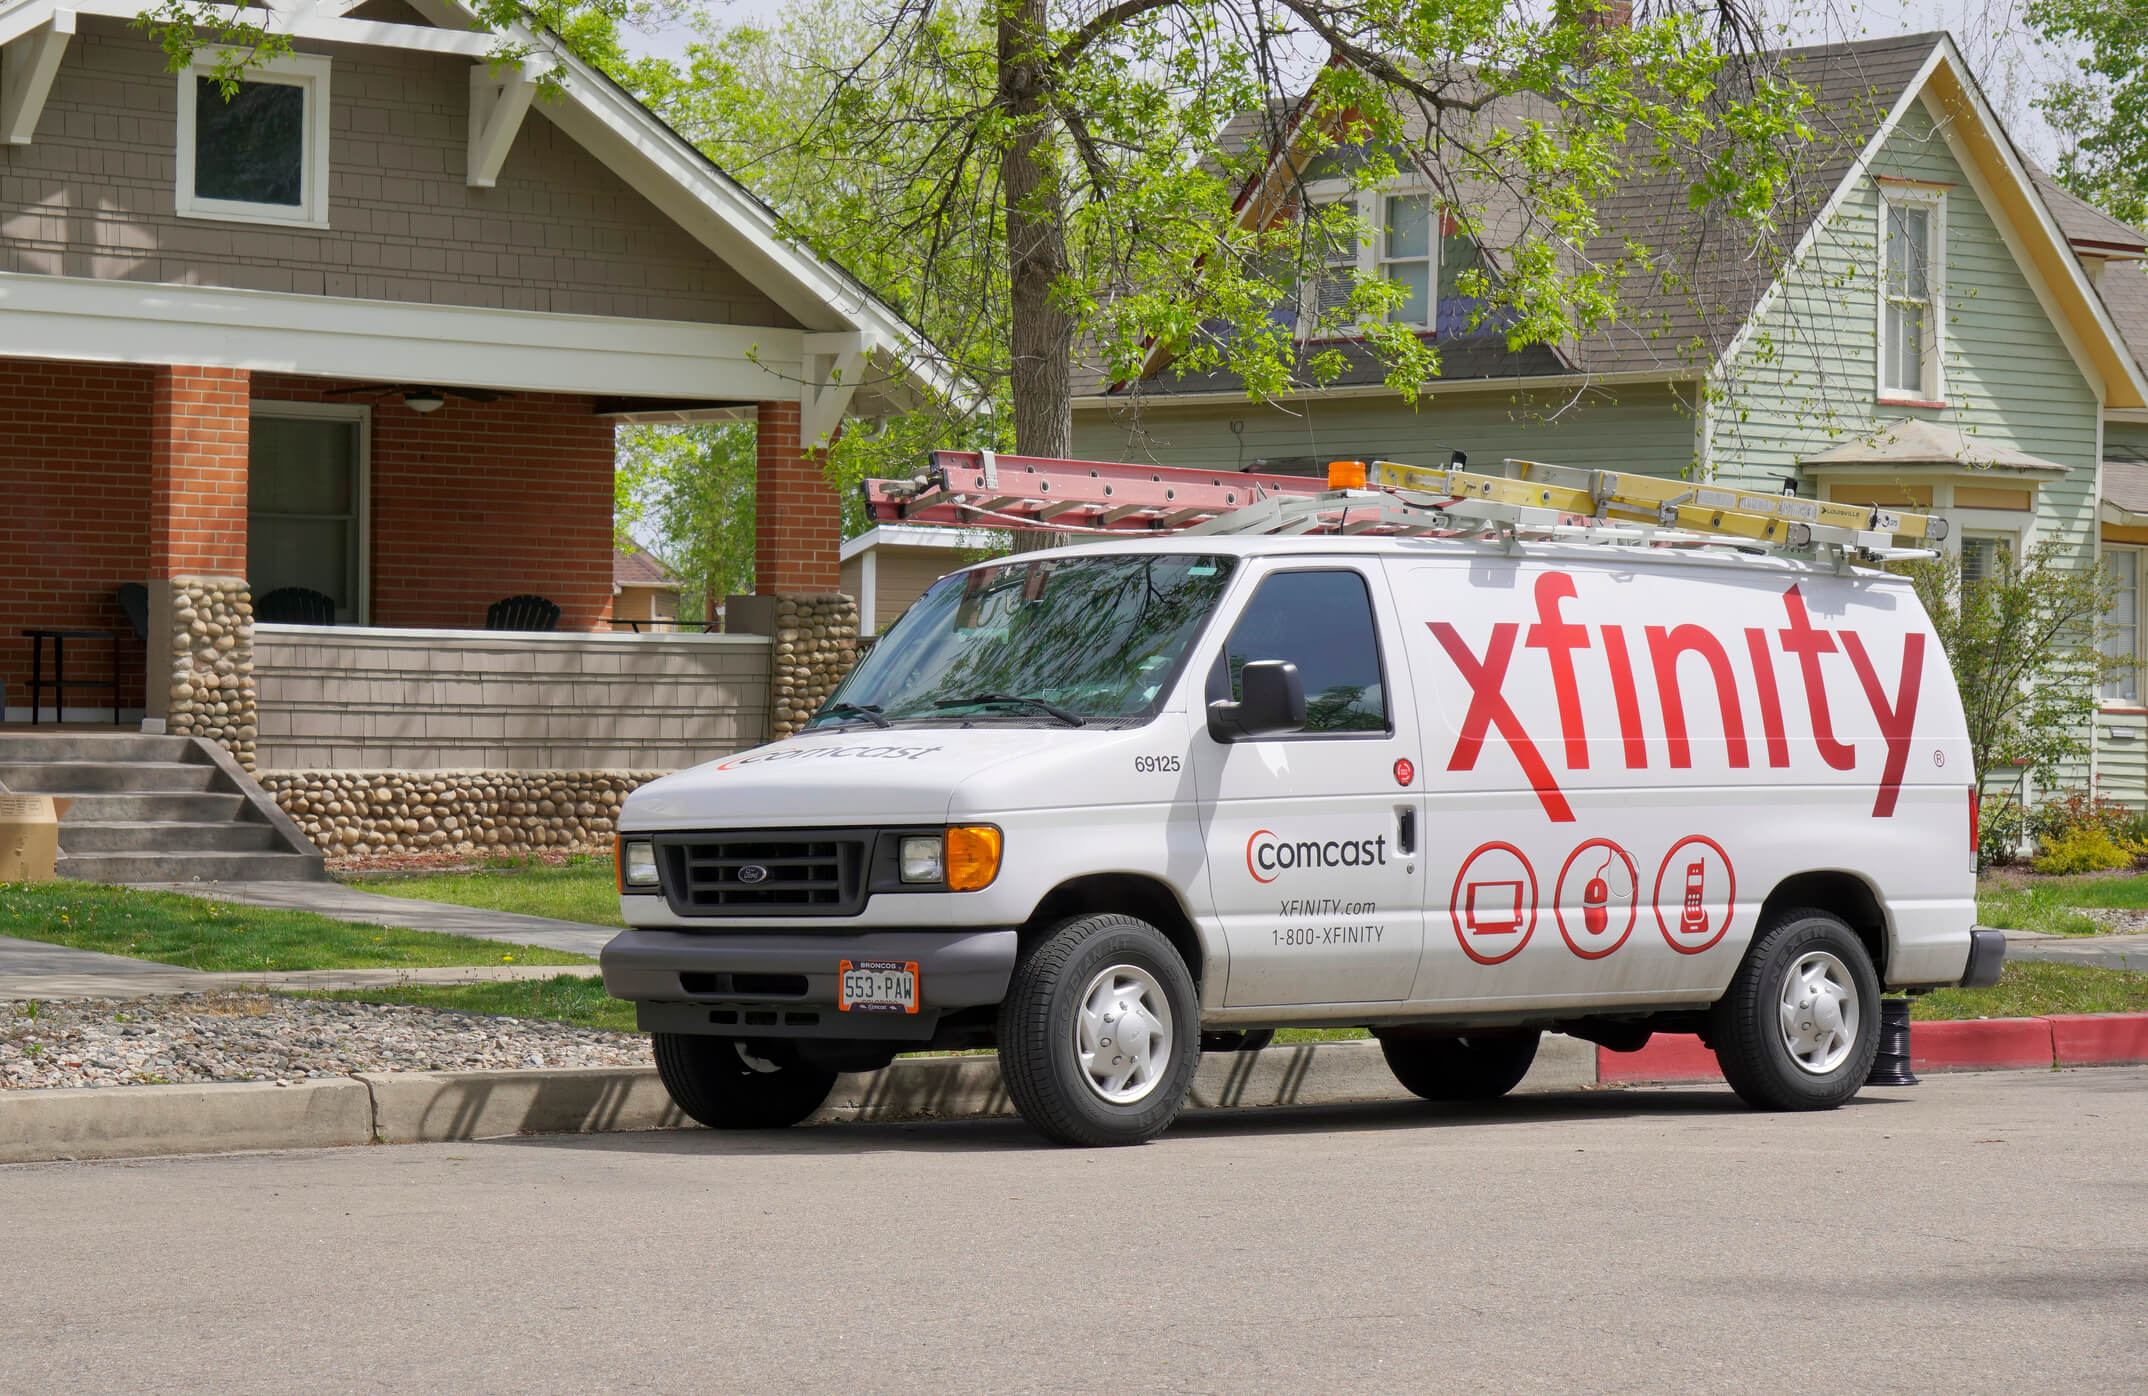 An Xfinity van parked in front of a house.